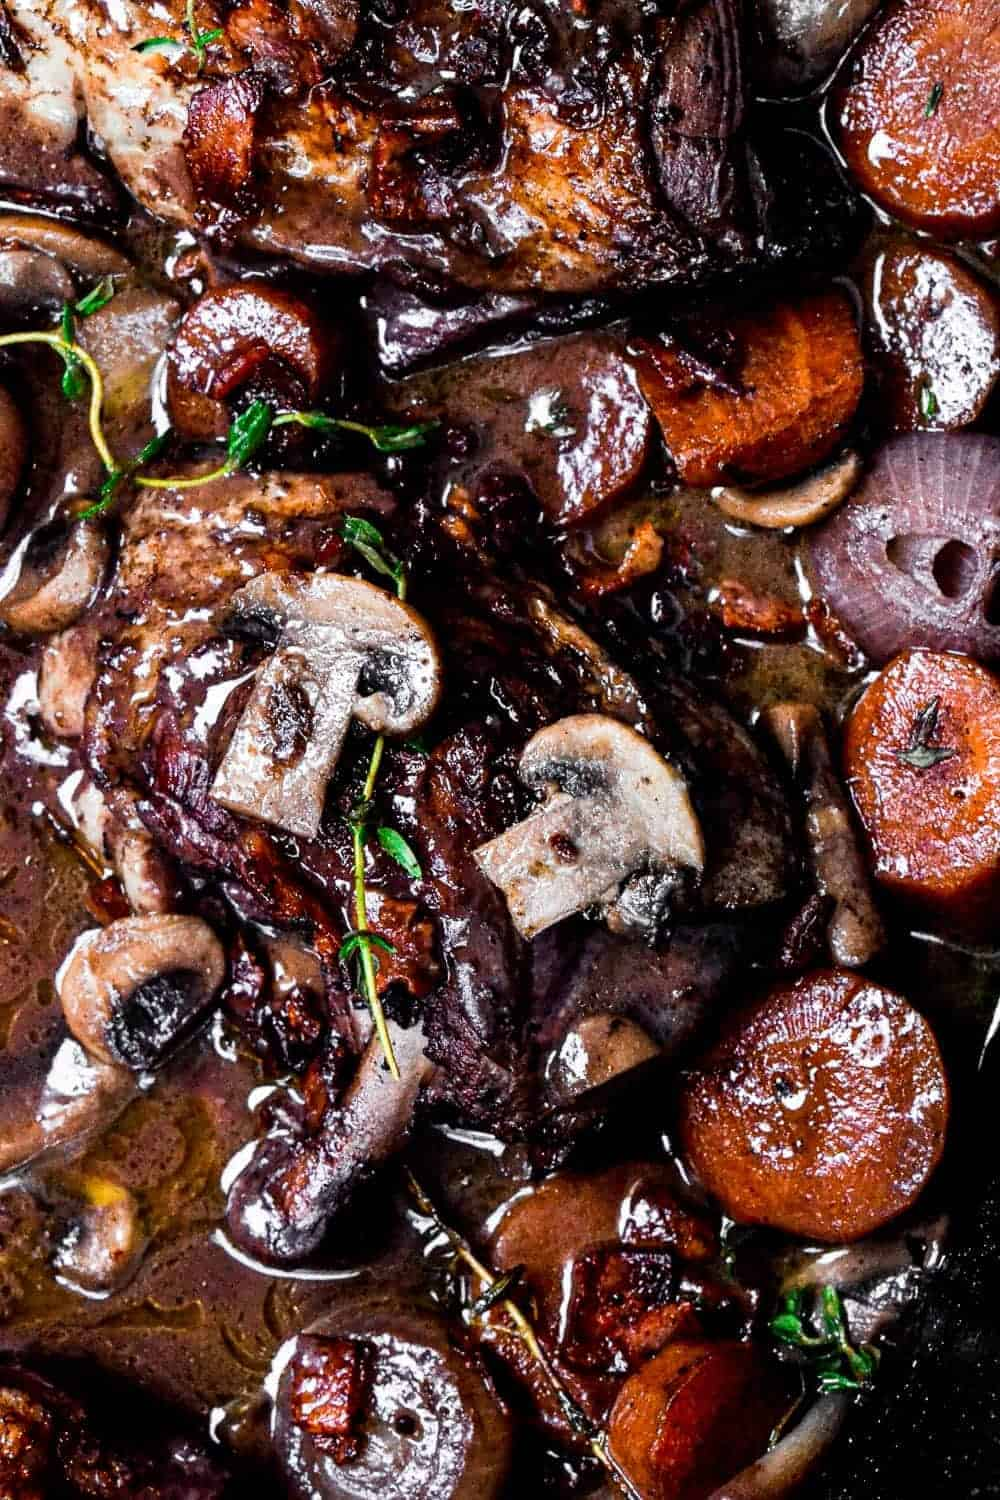 Close up of mushrooms on the cooked chicken